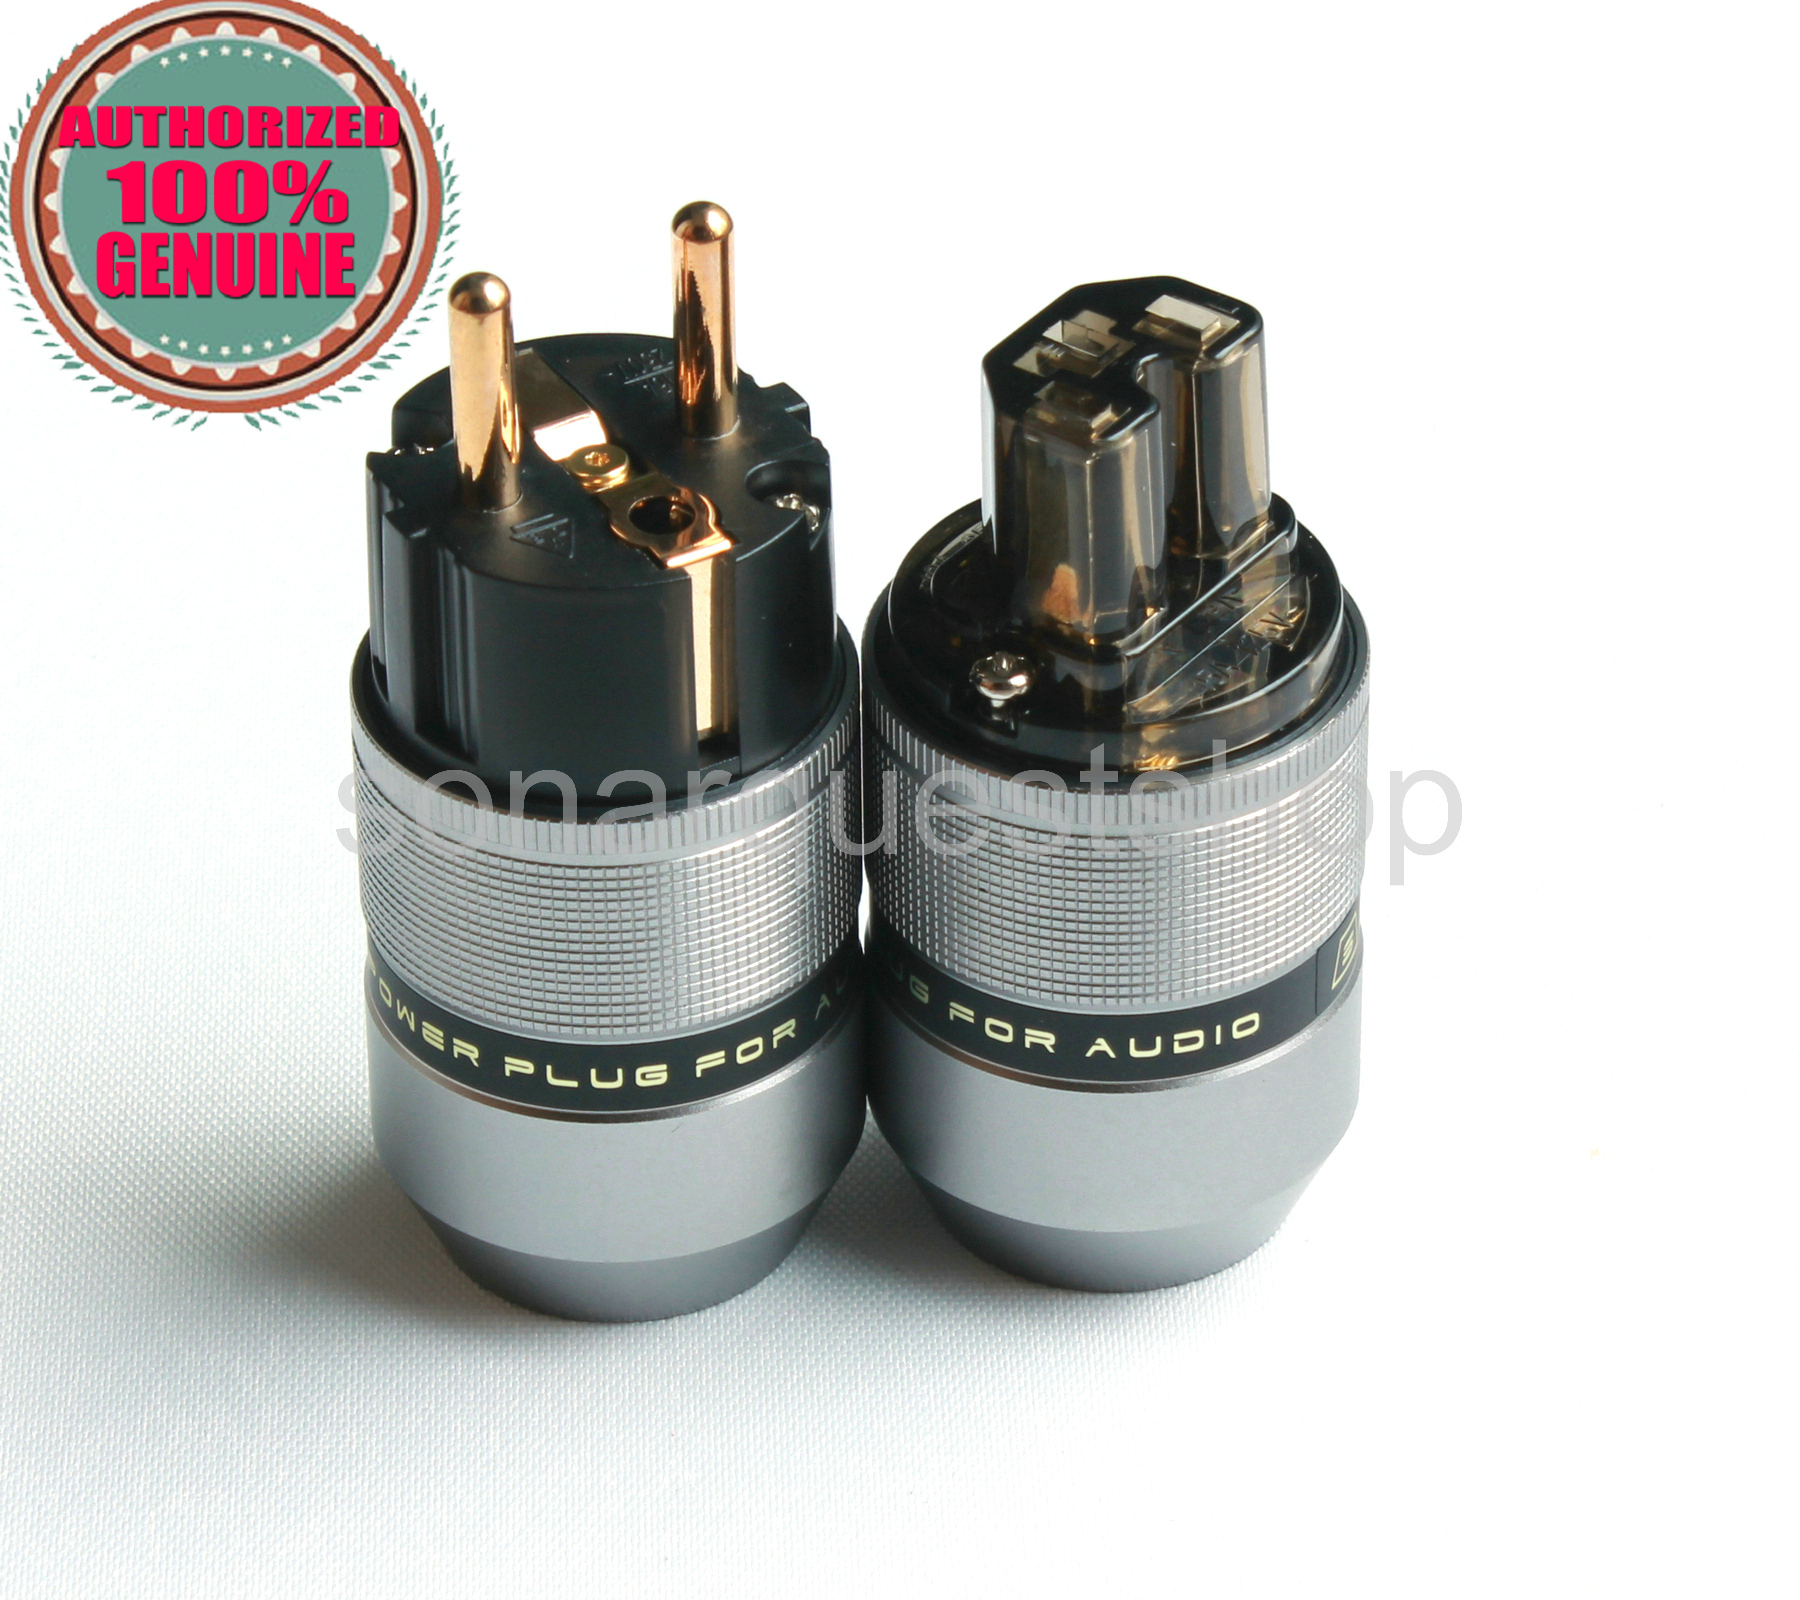 SONARQUEST PA-40E(G) + PA-40F(G) EU Gold Plated Gray Special Aluminum alloy Power Plug & IEC Connector